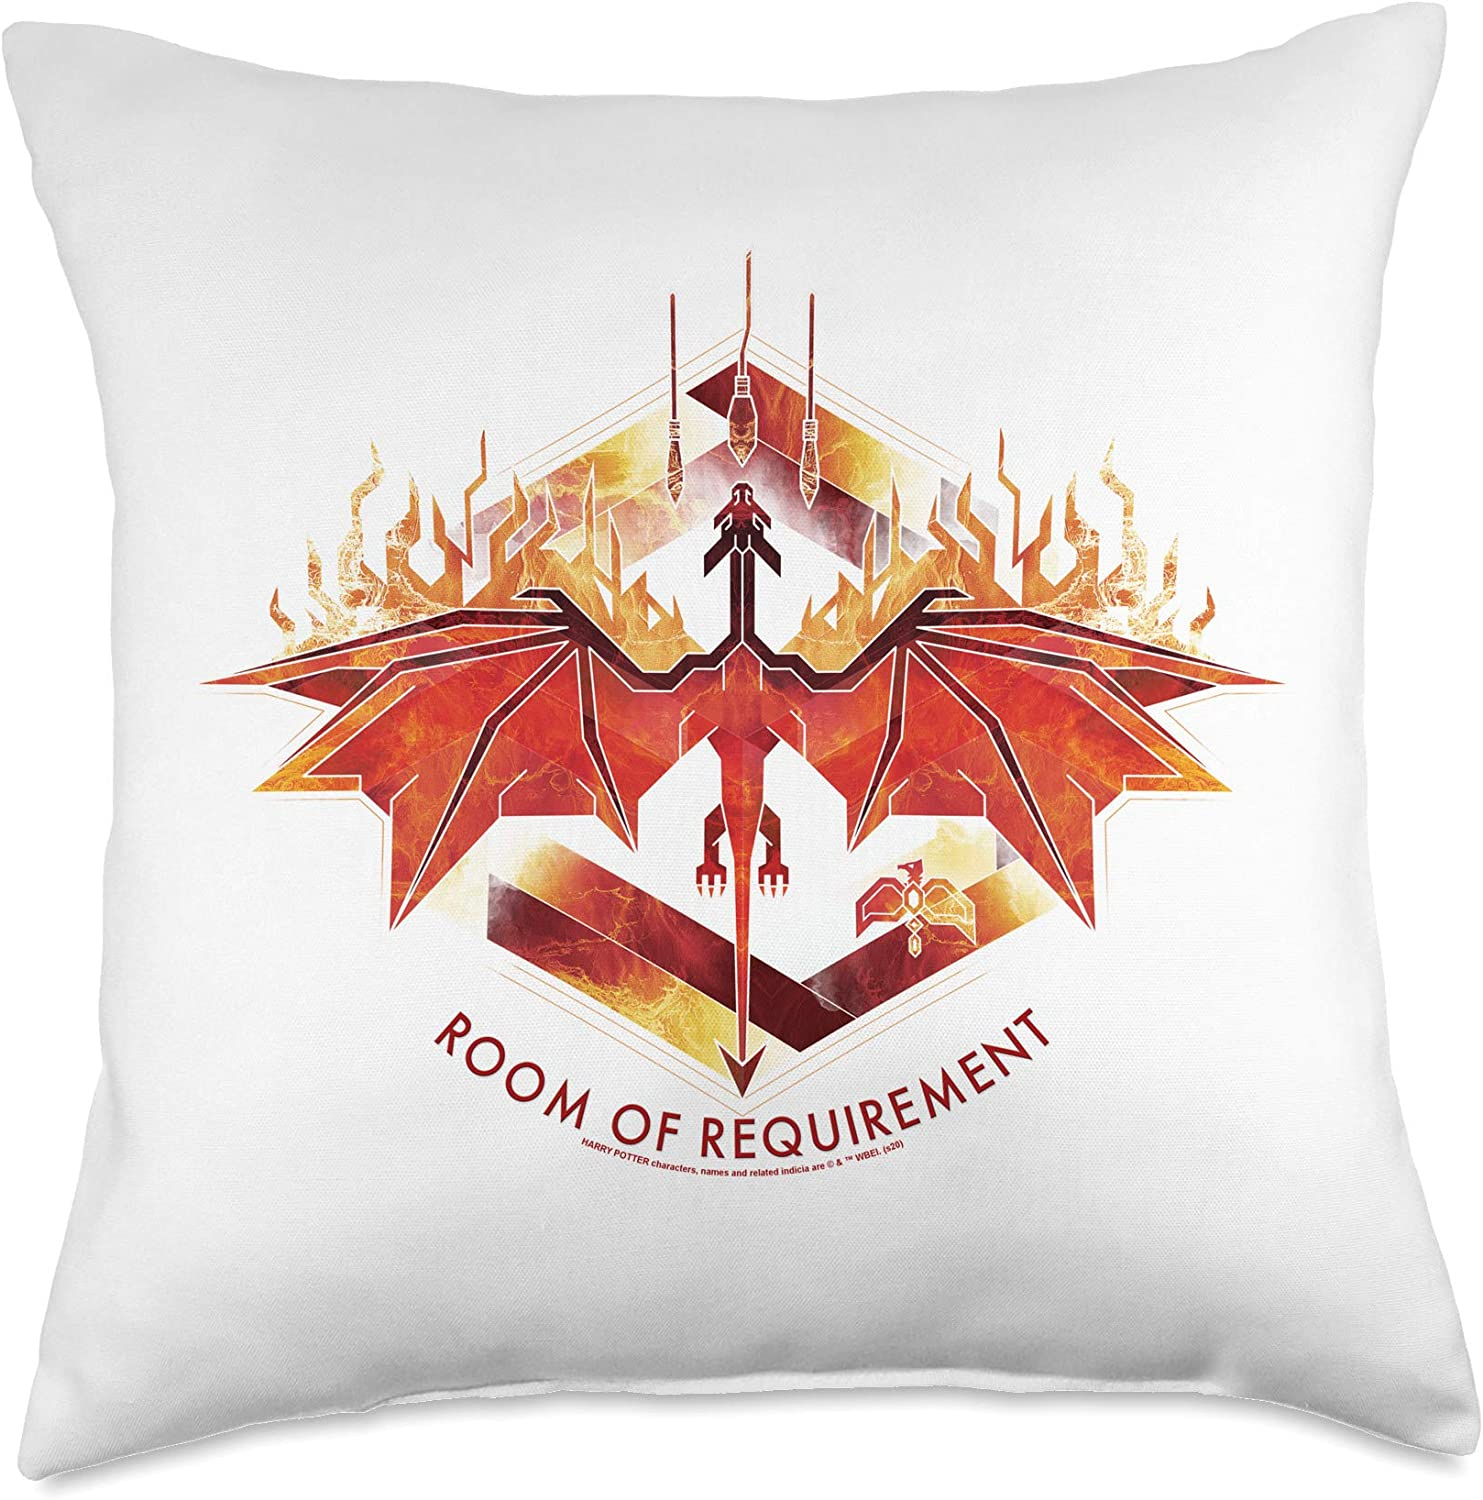 Harry Potter Room of Requirement Dragon Throw Pillow, 18x18, Multicolor